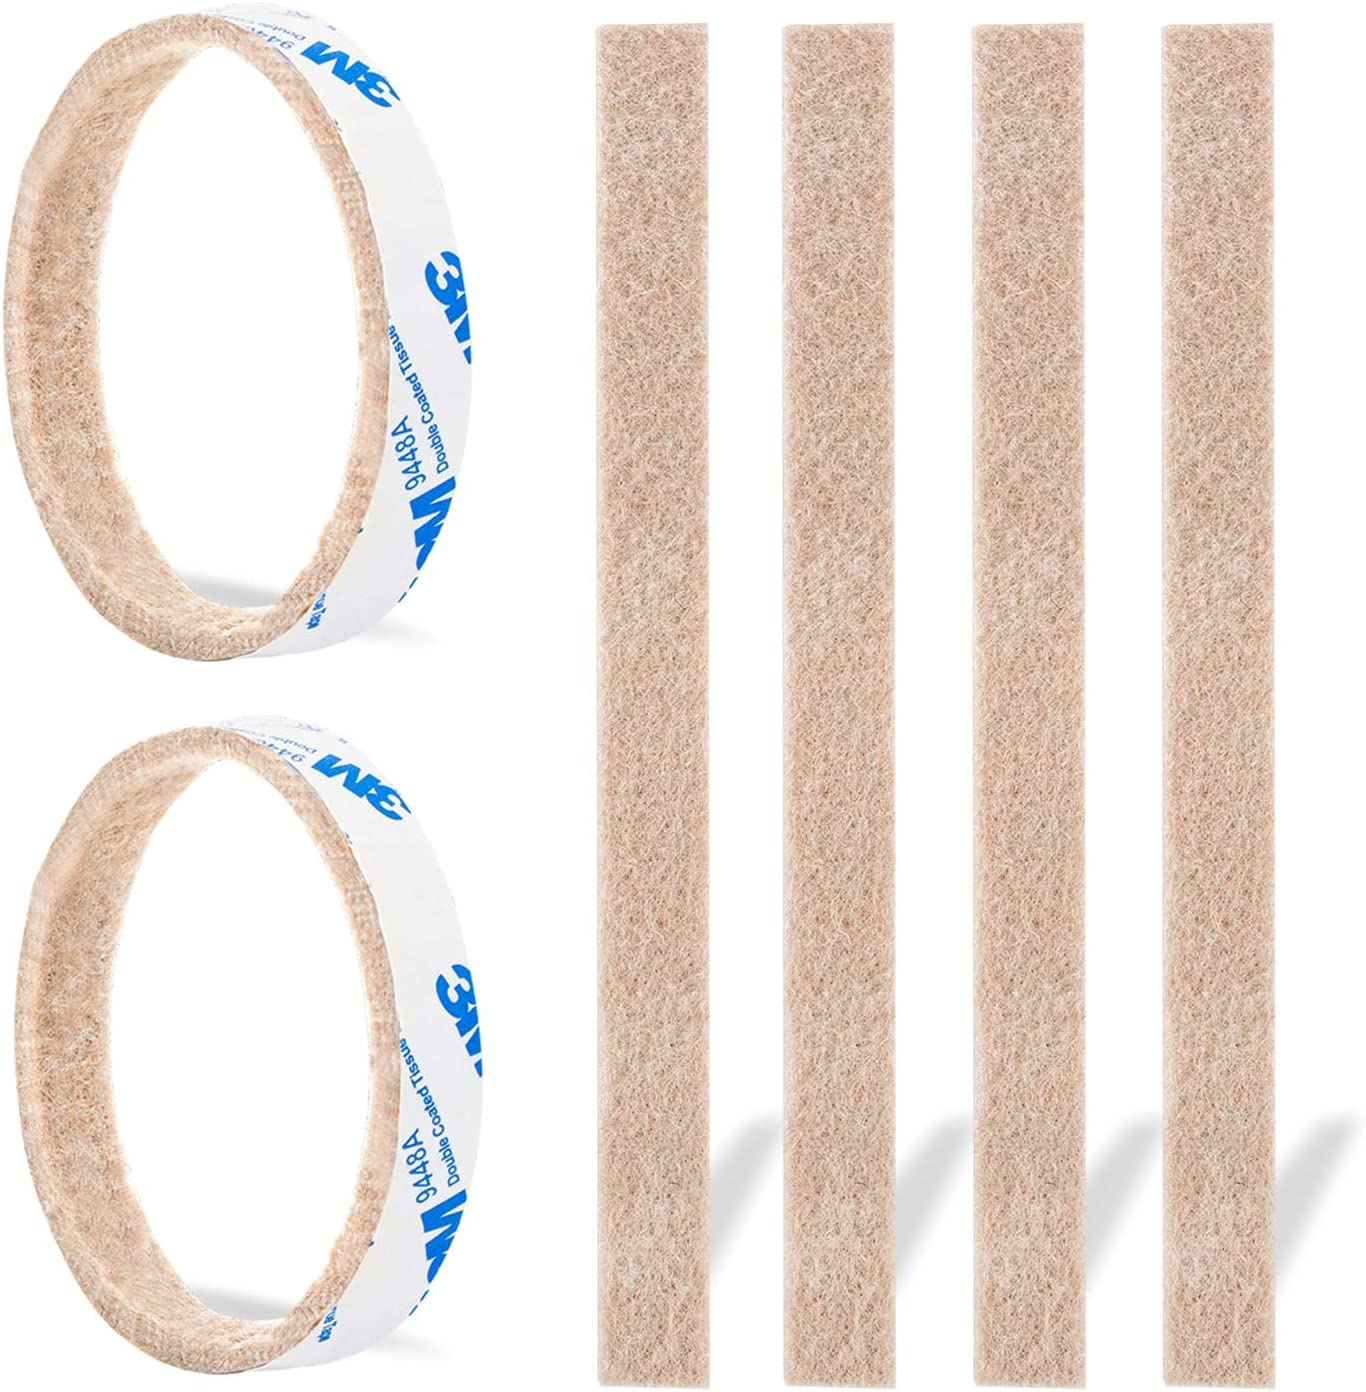 """Furniture Felt Pads Strips 20pcs Pack 1/2"""" x 6"""" Self Adhesive Beige Furniture Pads Anti Scratch Felt Pads Heavy Duty 1/5inch Thick Floor Protector for Chair Feet for Hardwood Floor"""